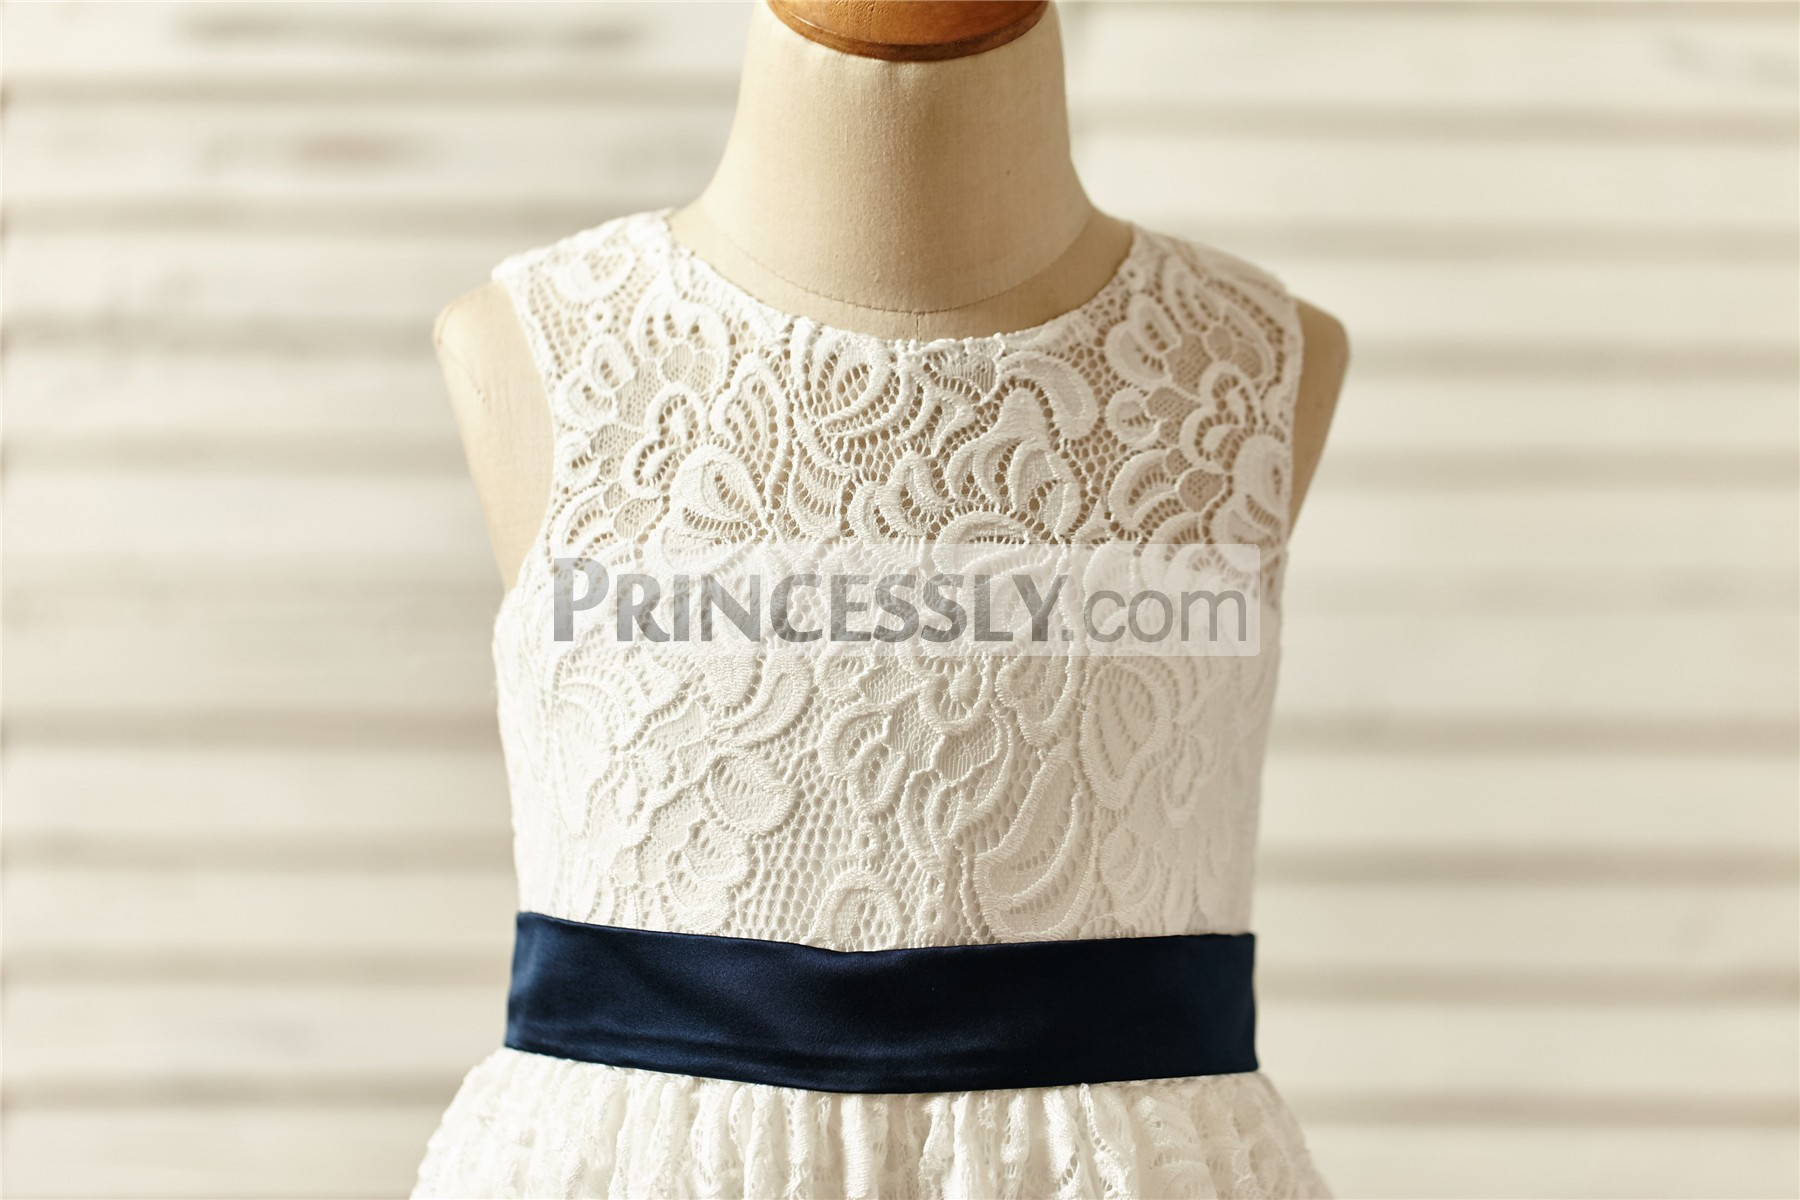 Jewel neckline sleeveless floral lace bodice with navy blue belt